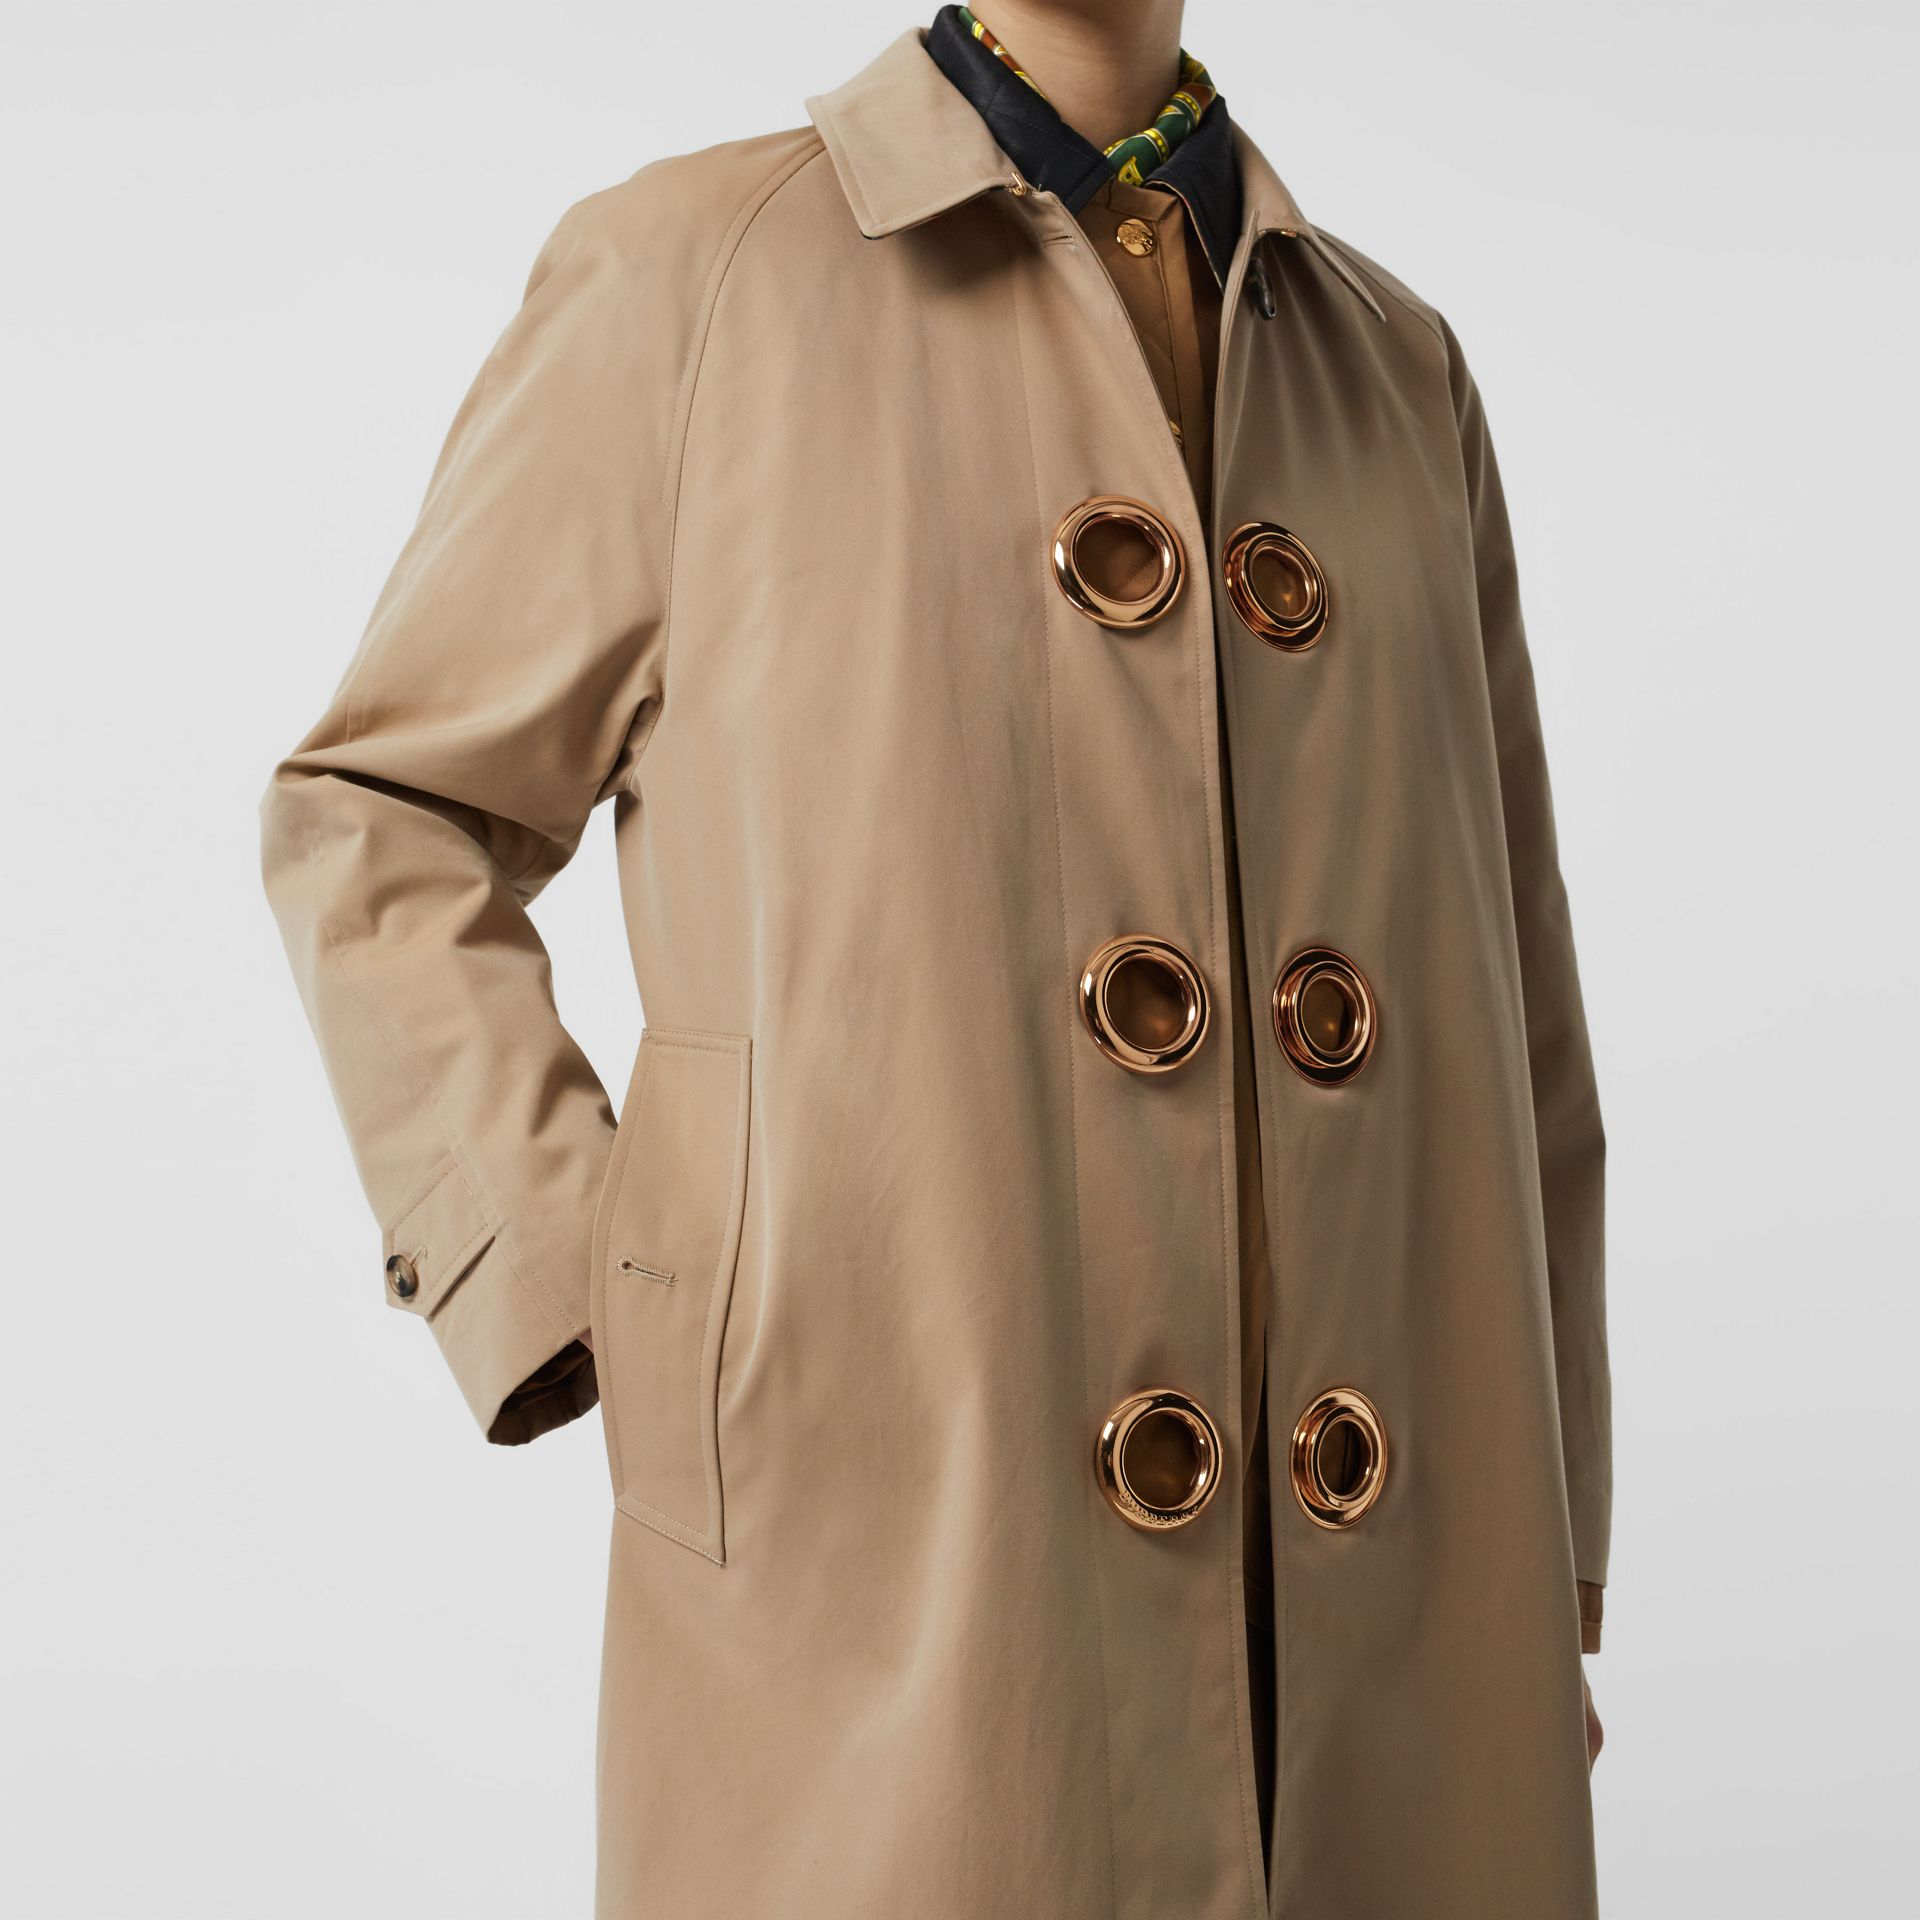 Grommet Detail Cotton Gabardine Car Coat in Honey - Women | Burberry - gallery image 5